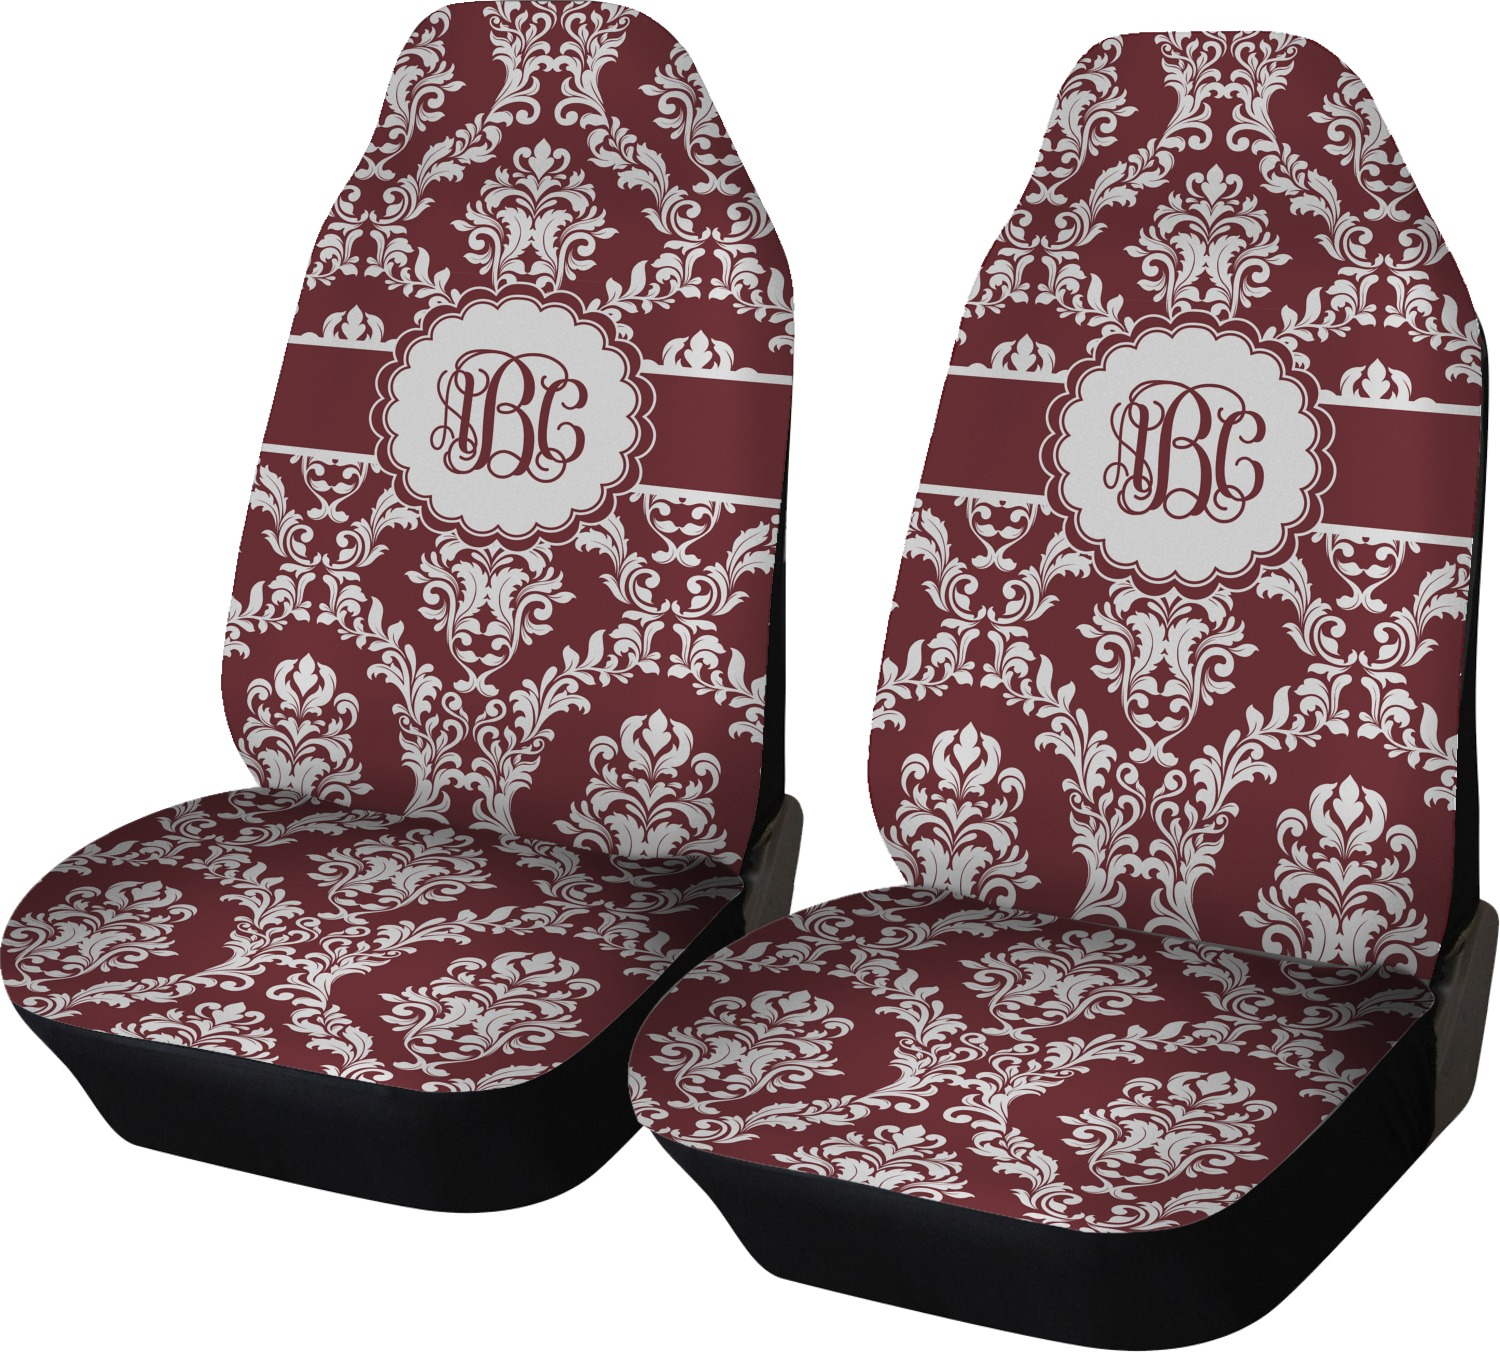 Maroon White Car Seat Covers Set Of Two Personalized